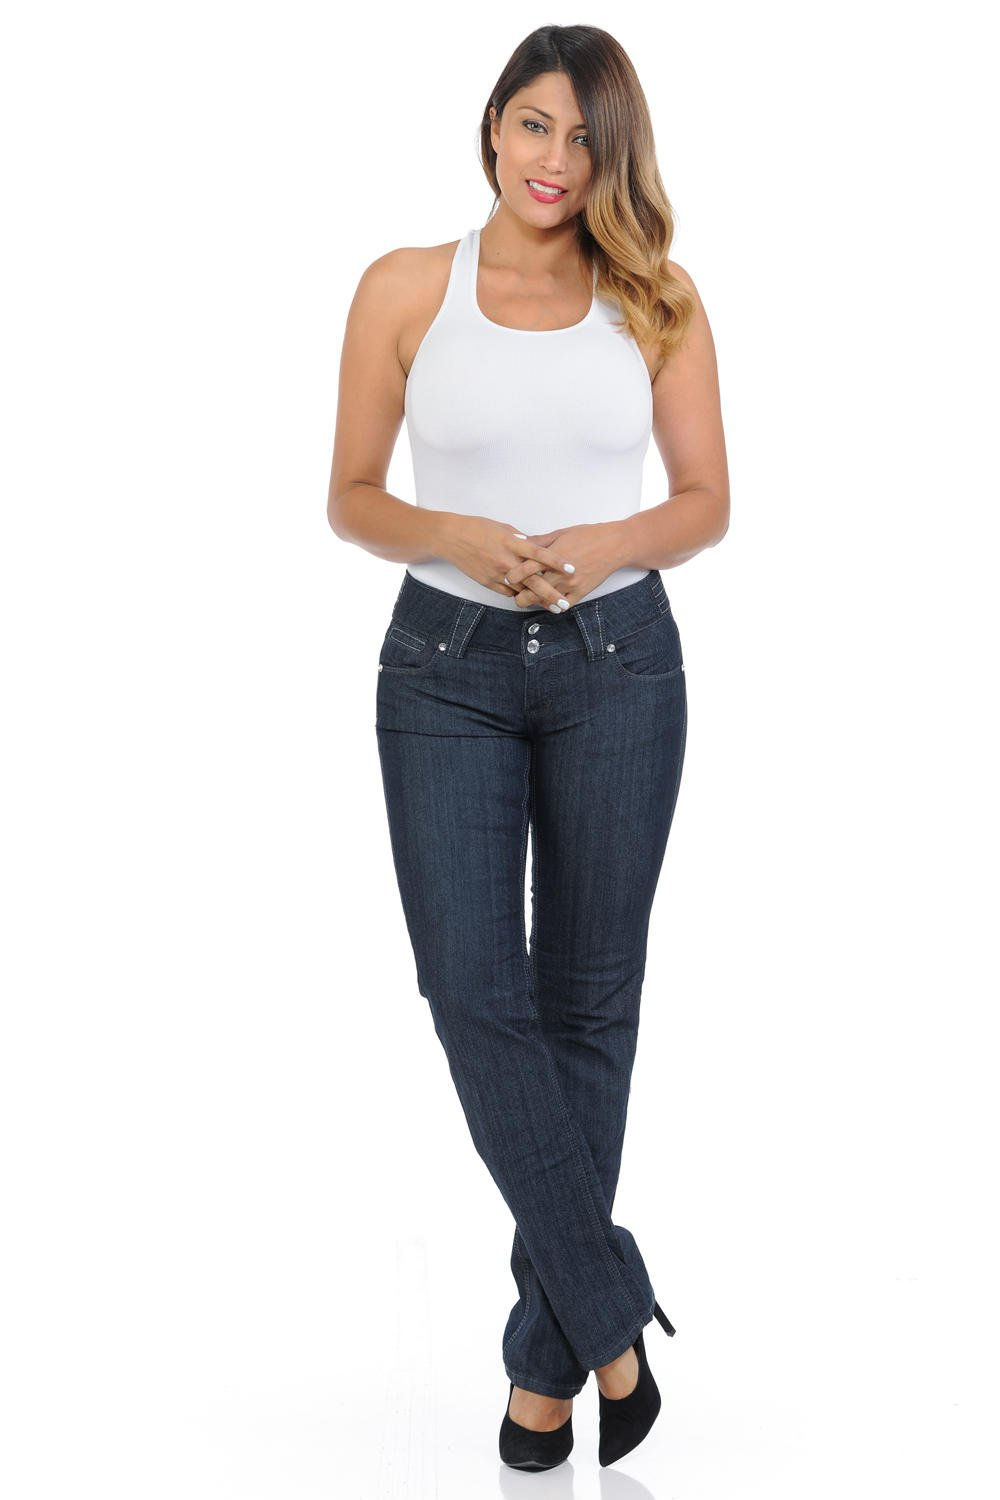 Pasion Women's Jeans · Push Up · Bootcut · Amazing Fit · Style B875 · Navy · Size 01